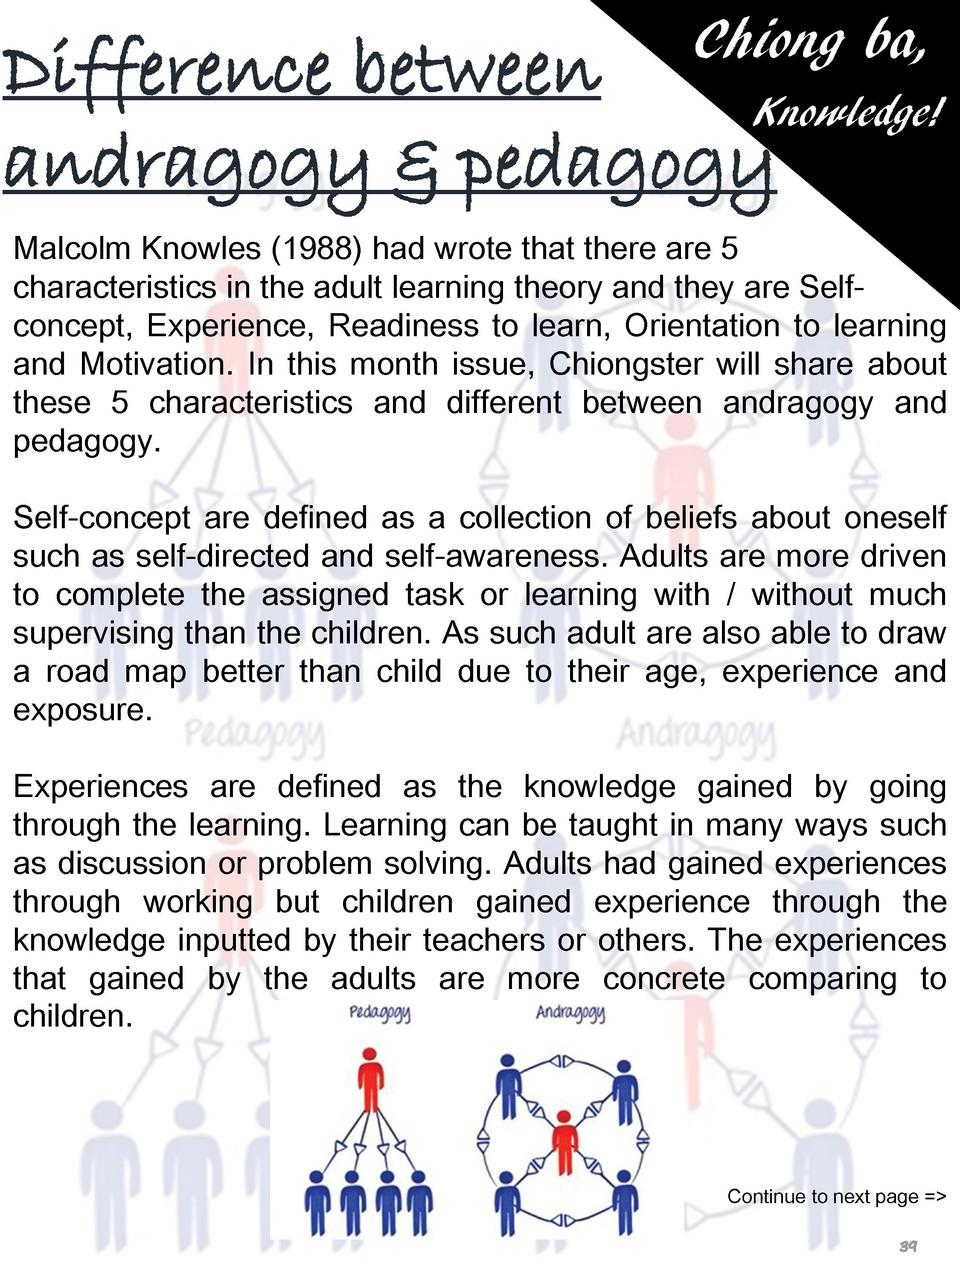 Chiong ba,  Difference between Knowledge  andragogy   pedagogy Malcolm Knowles  1988  had wrote that there are 5 character...